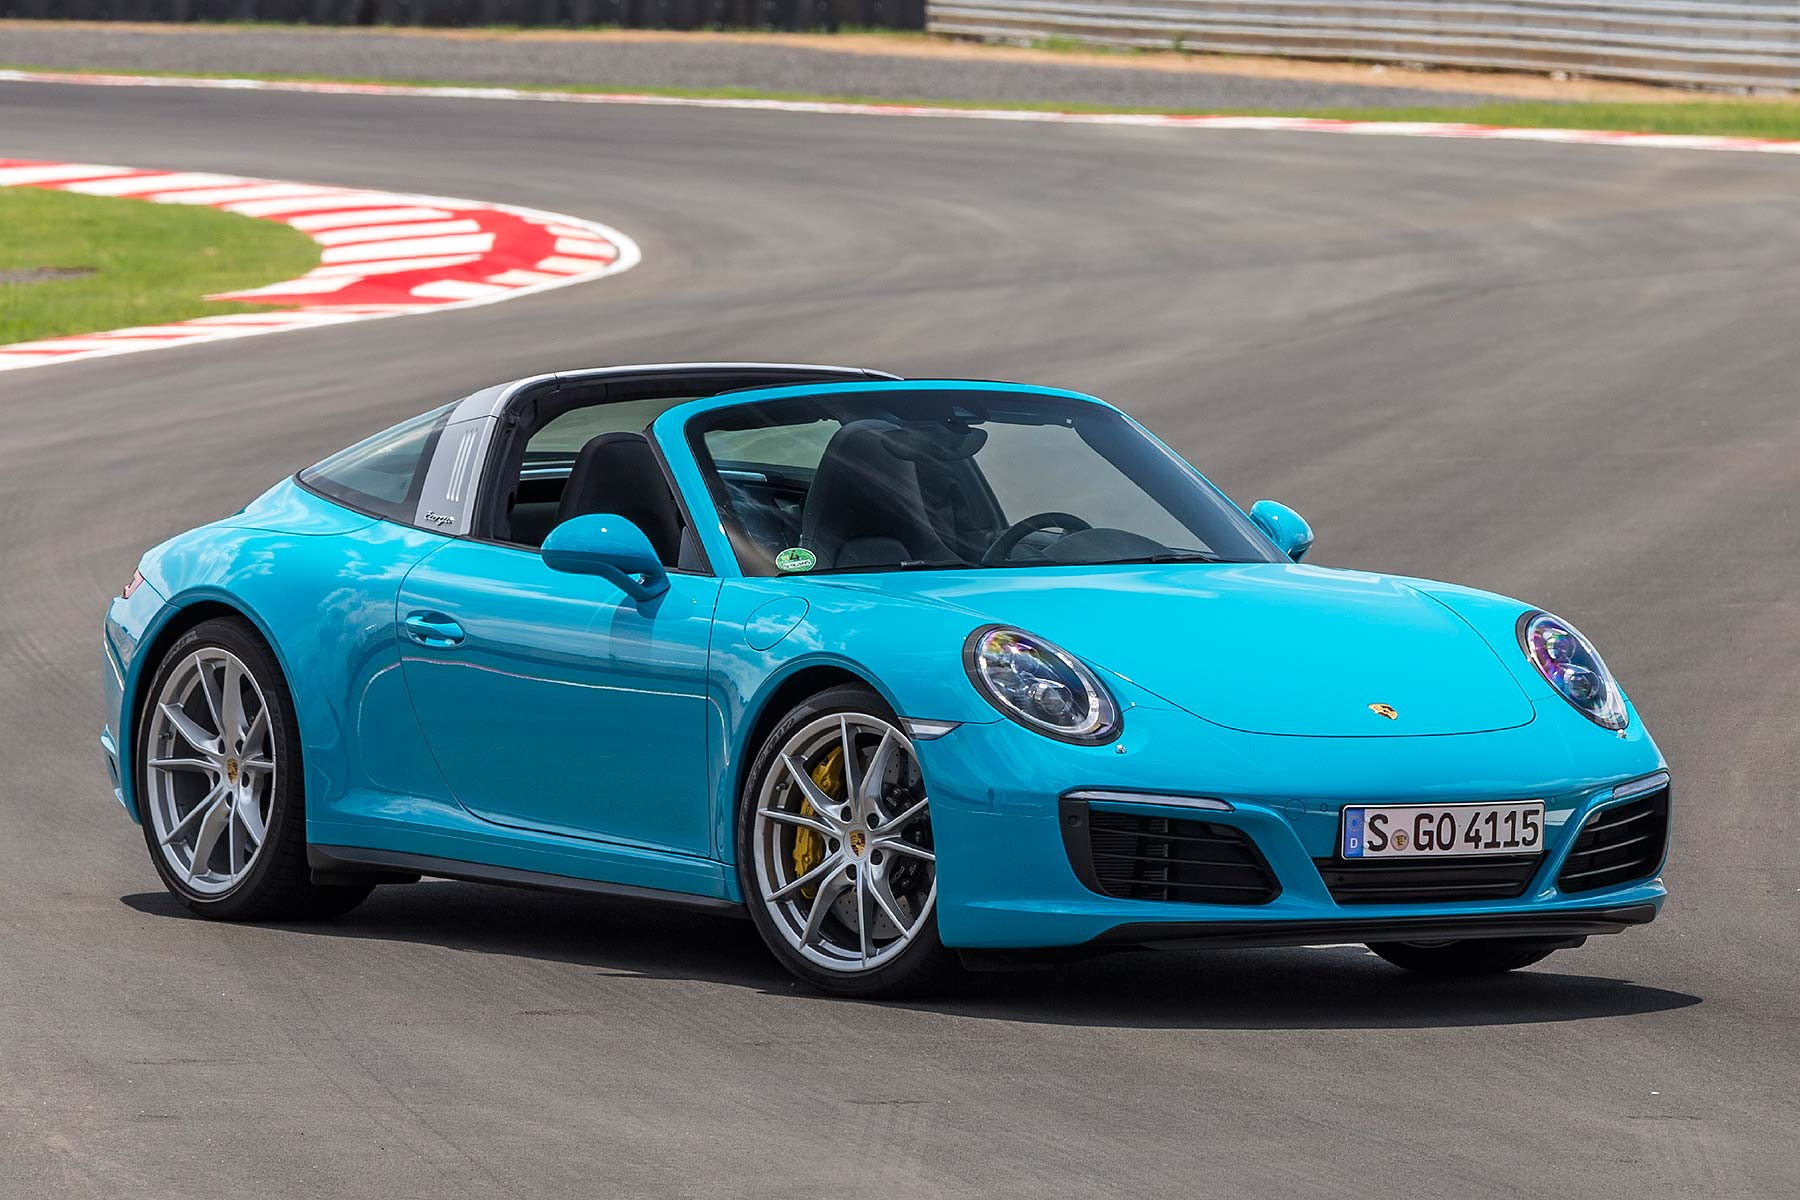 2016 porsche 911 targa 4s review first drive motoring. Black Bedroom Furniture Sets. Home Design Ideas